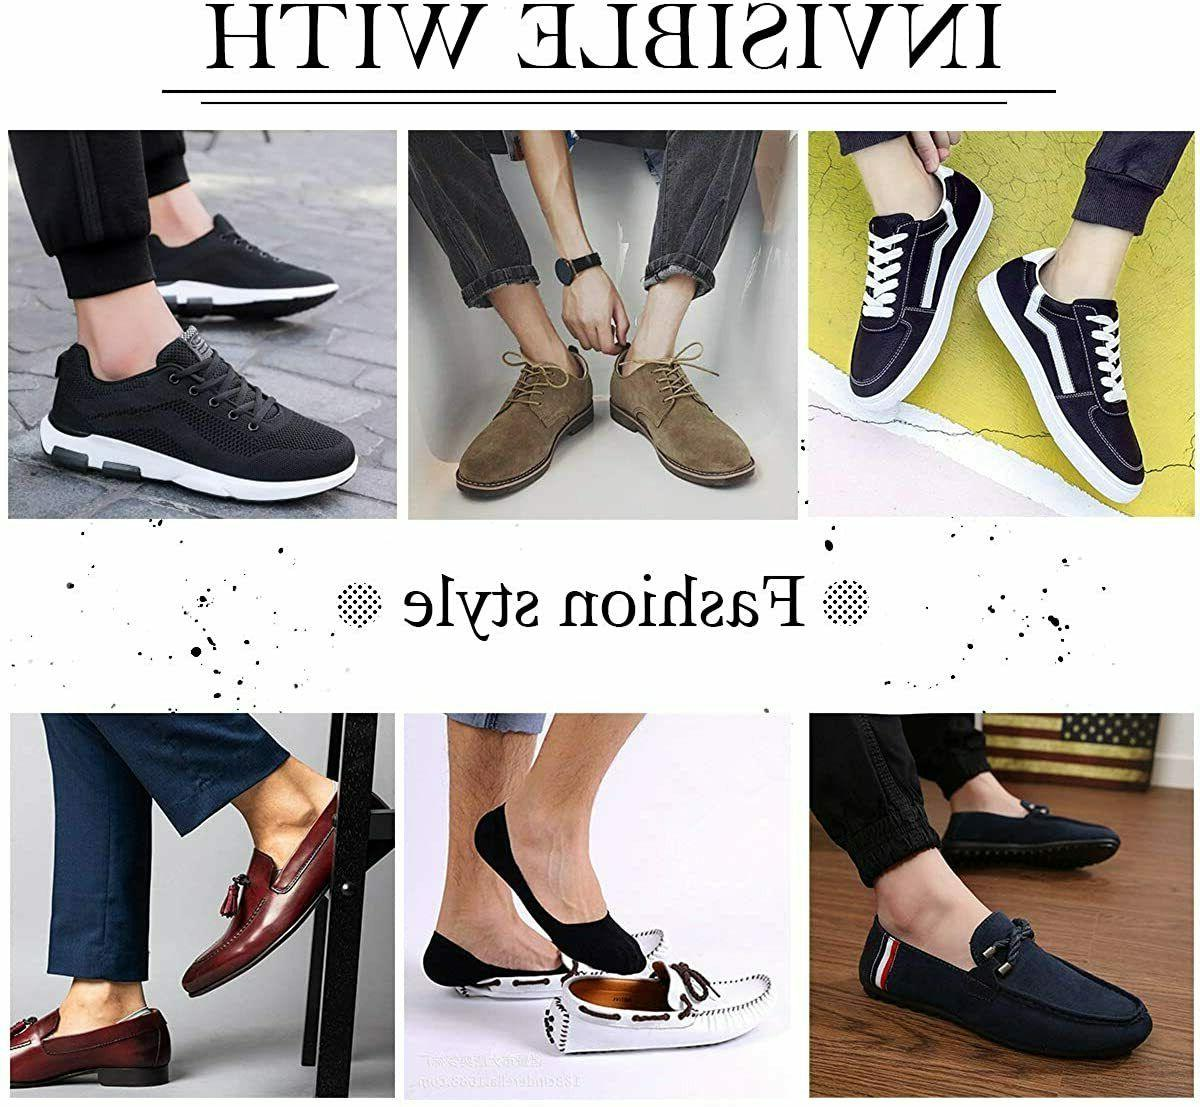 3-12 Pairs Invisible Socks No Show Nonslip Loafer Cotton 10-13